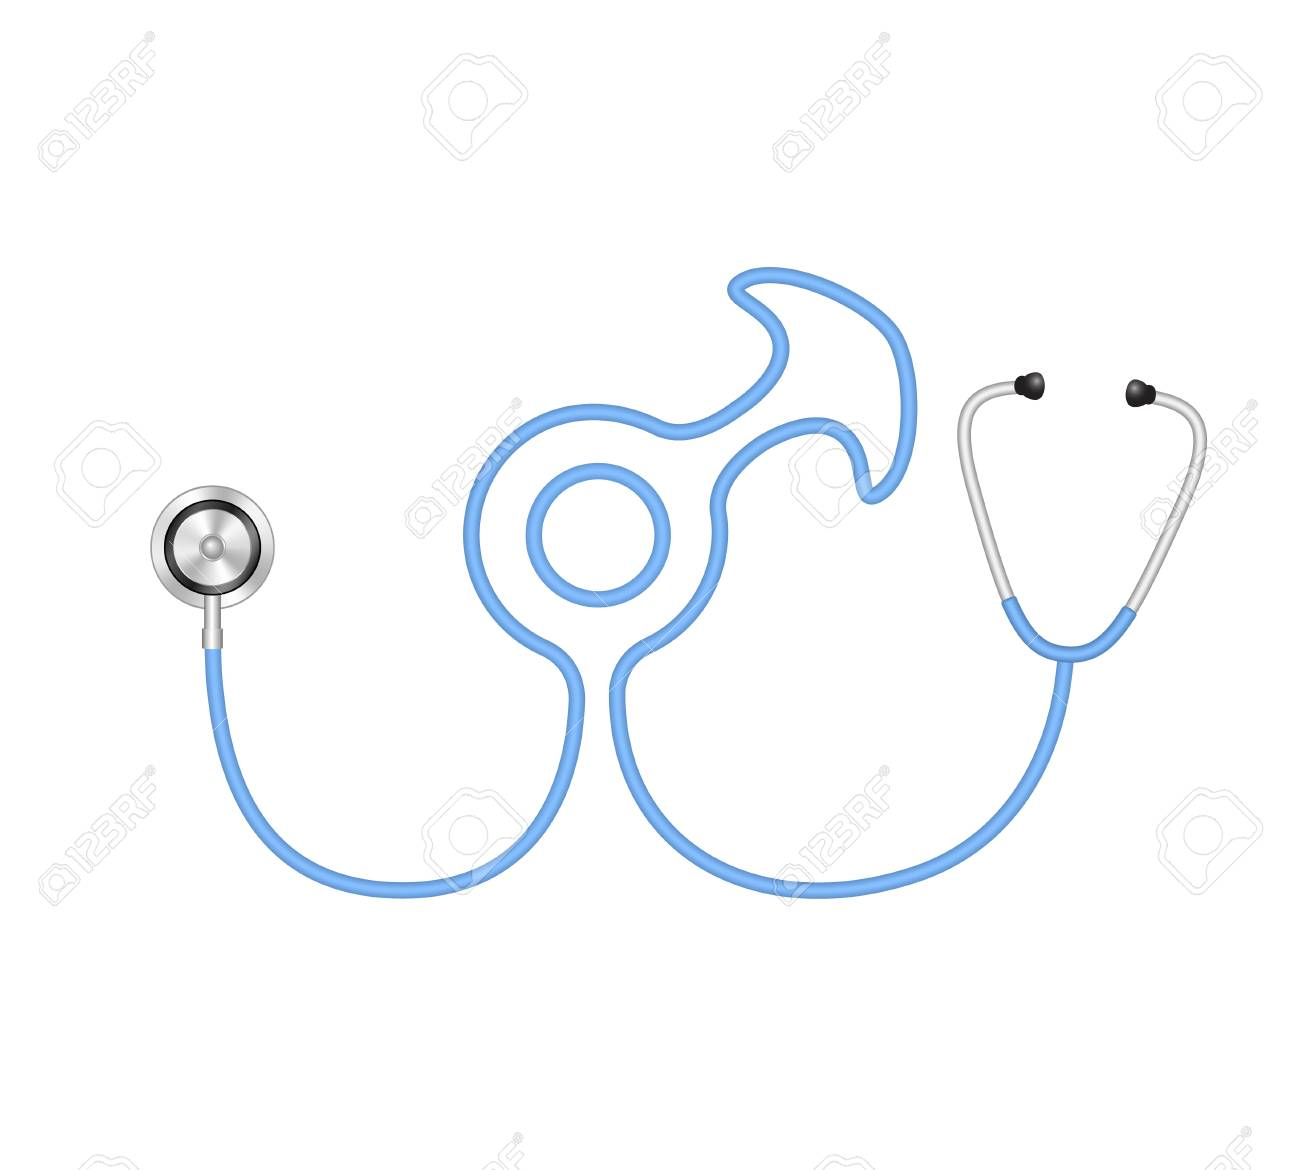 Stethoscope in shape of male symbol Stock Vector - 15967482